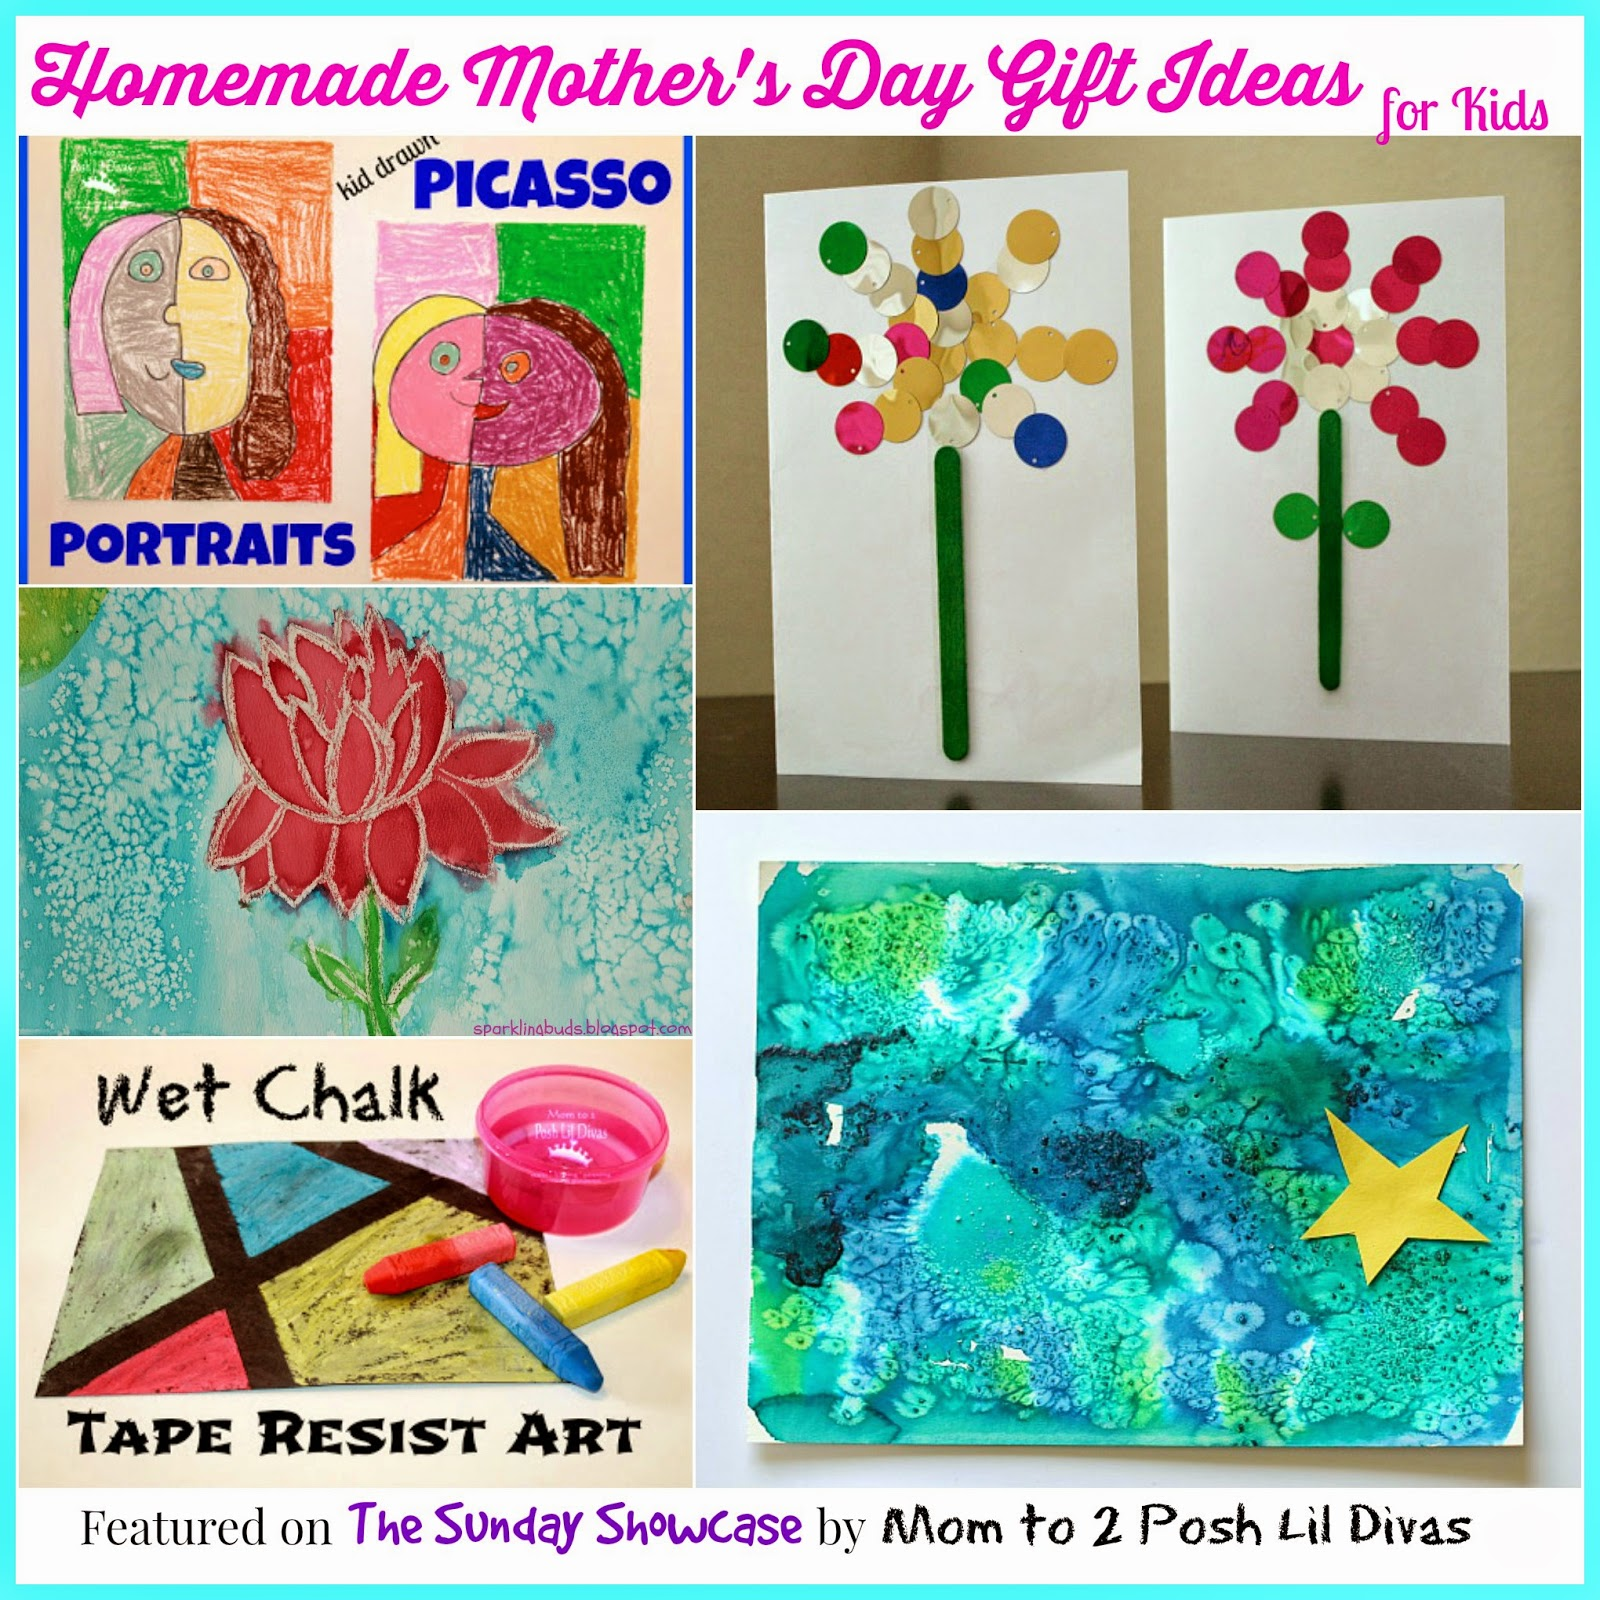 Homemade Gift Ideas That Kids: Click Any Of The Links Below For The Full Post And How-to's